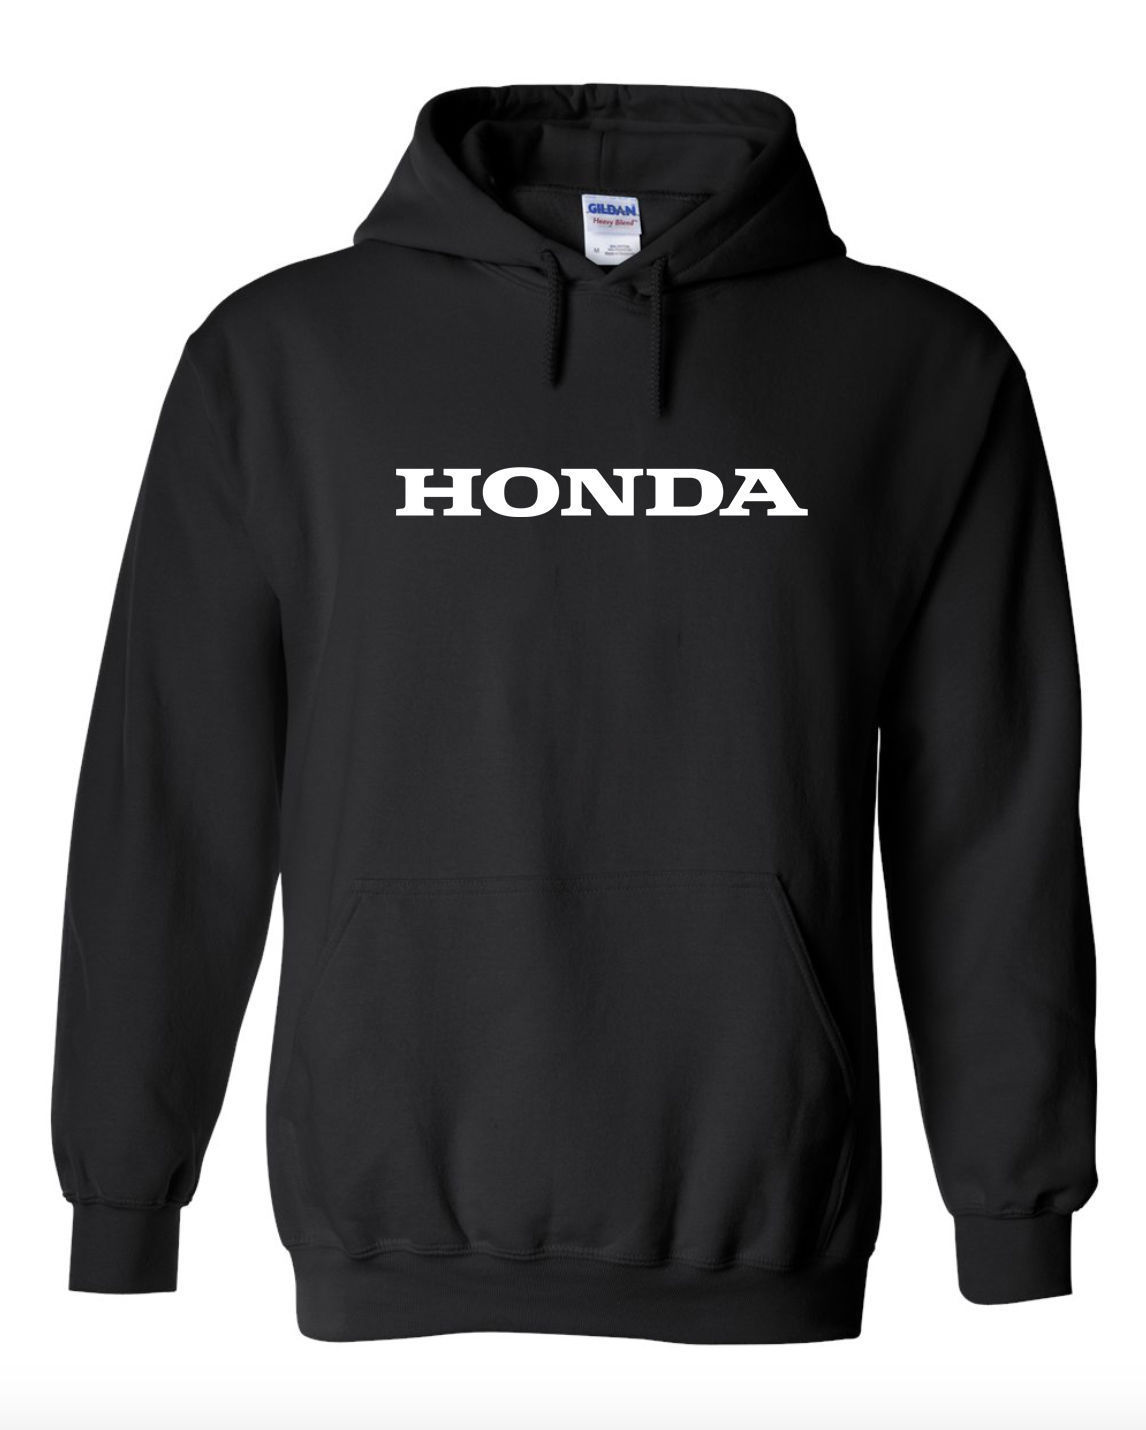 Honda Auto Hooded Sweatshirt